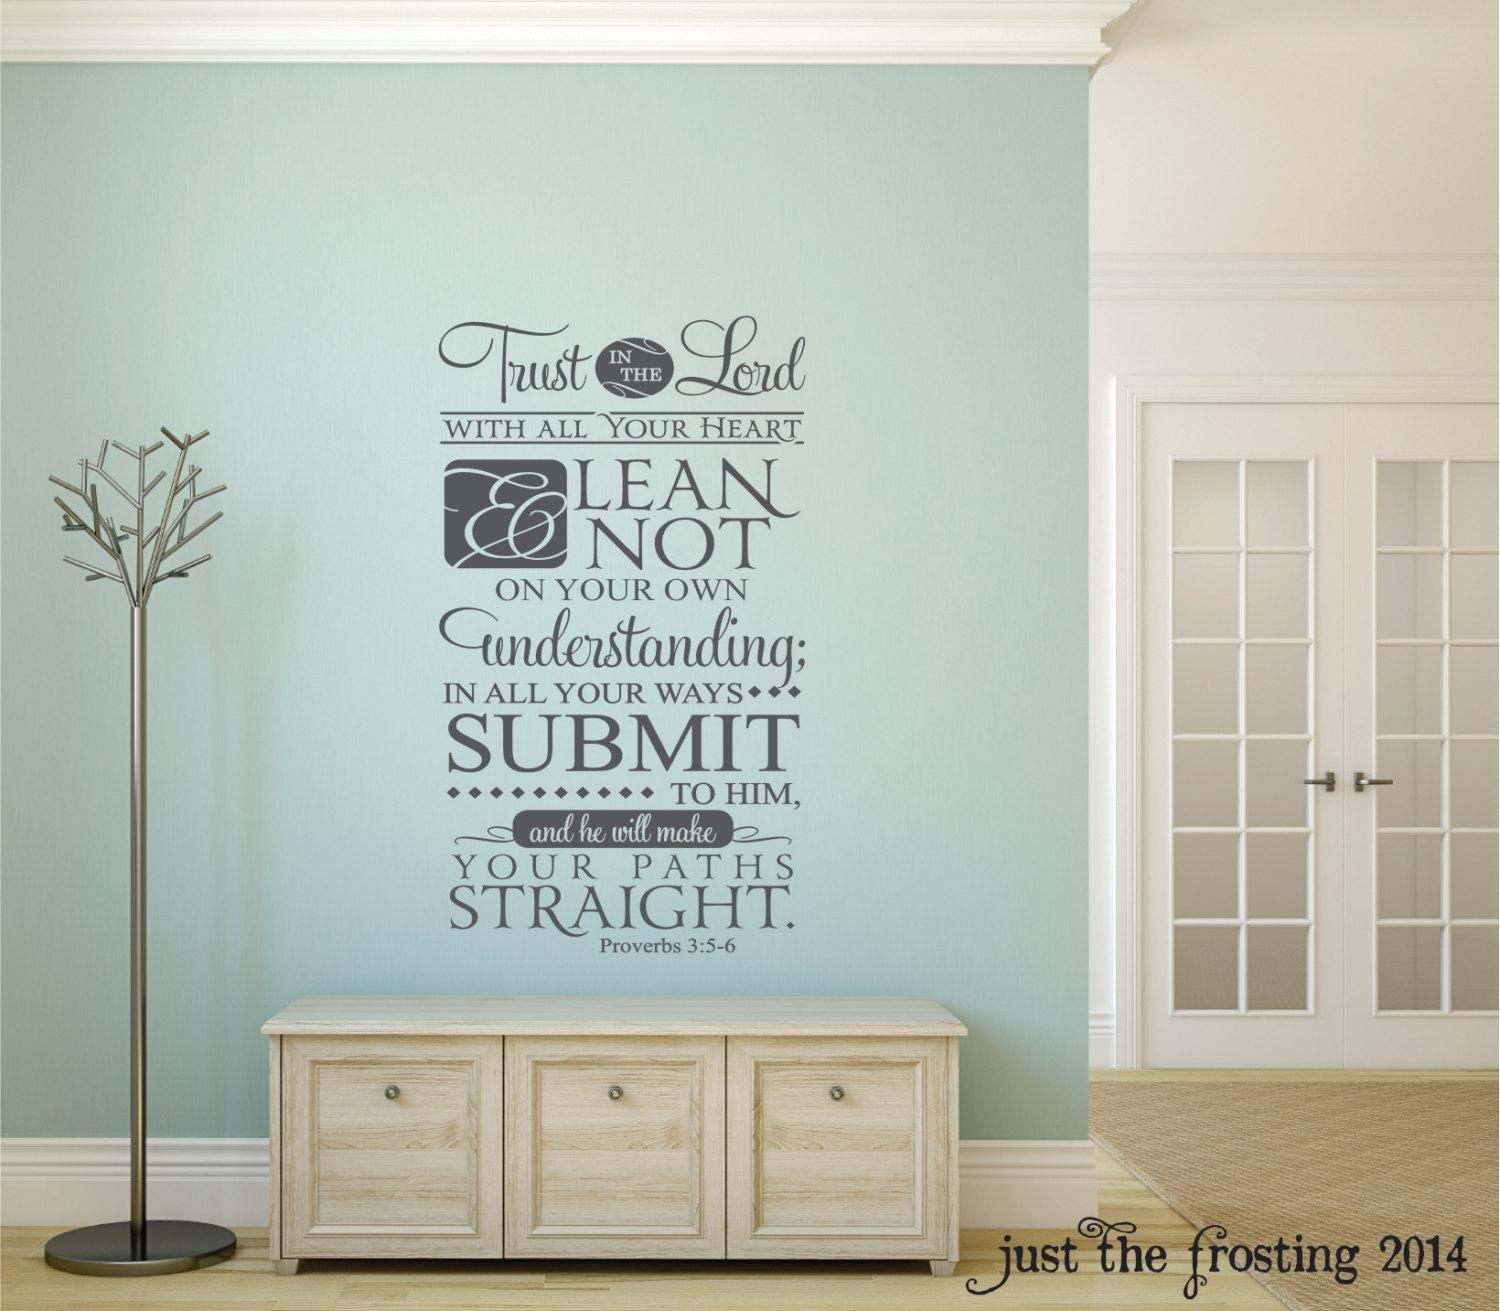 Trust In The Lord Wall Decal Proverbs 3:5 6 Decal Vinyl Inside Scripture Vinyl Wall Art (Image 15 of 20)